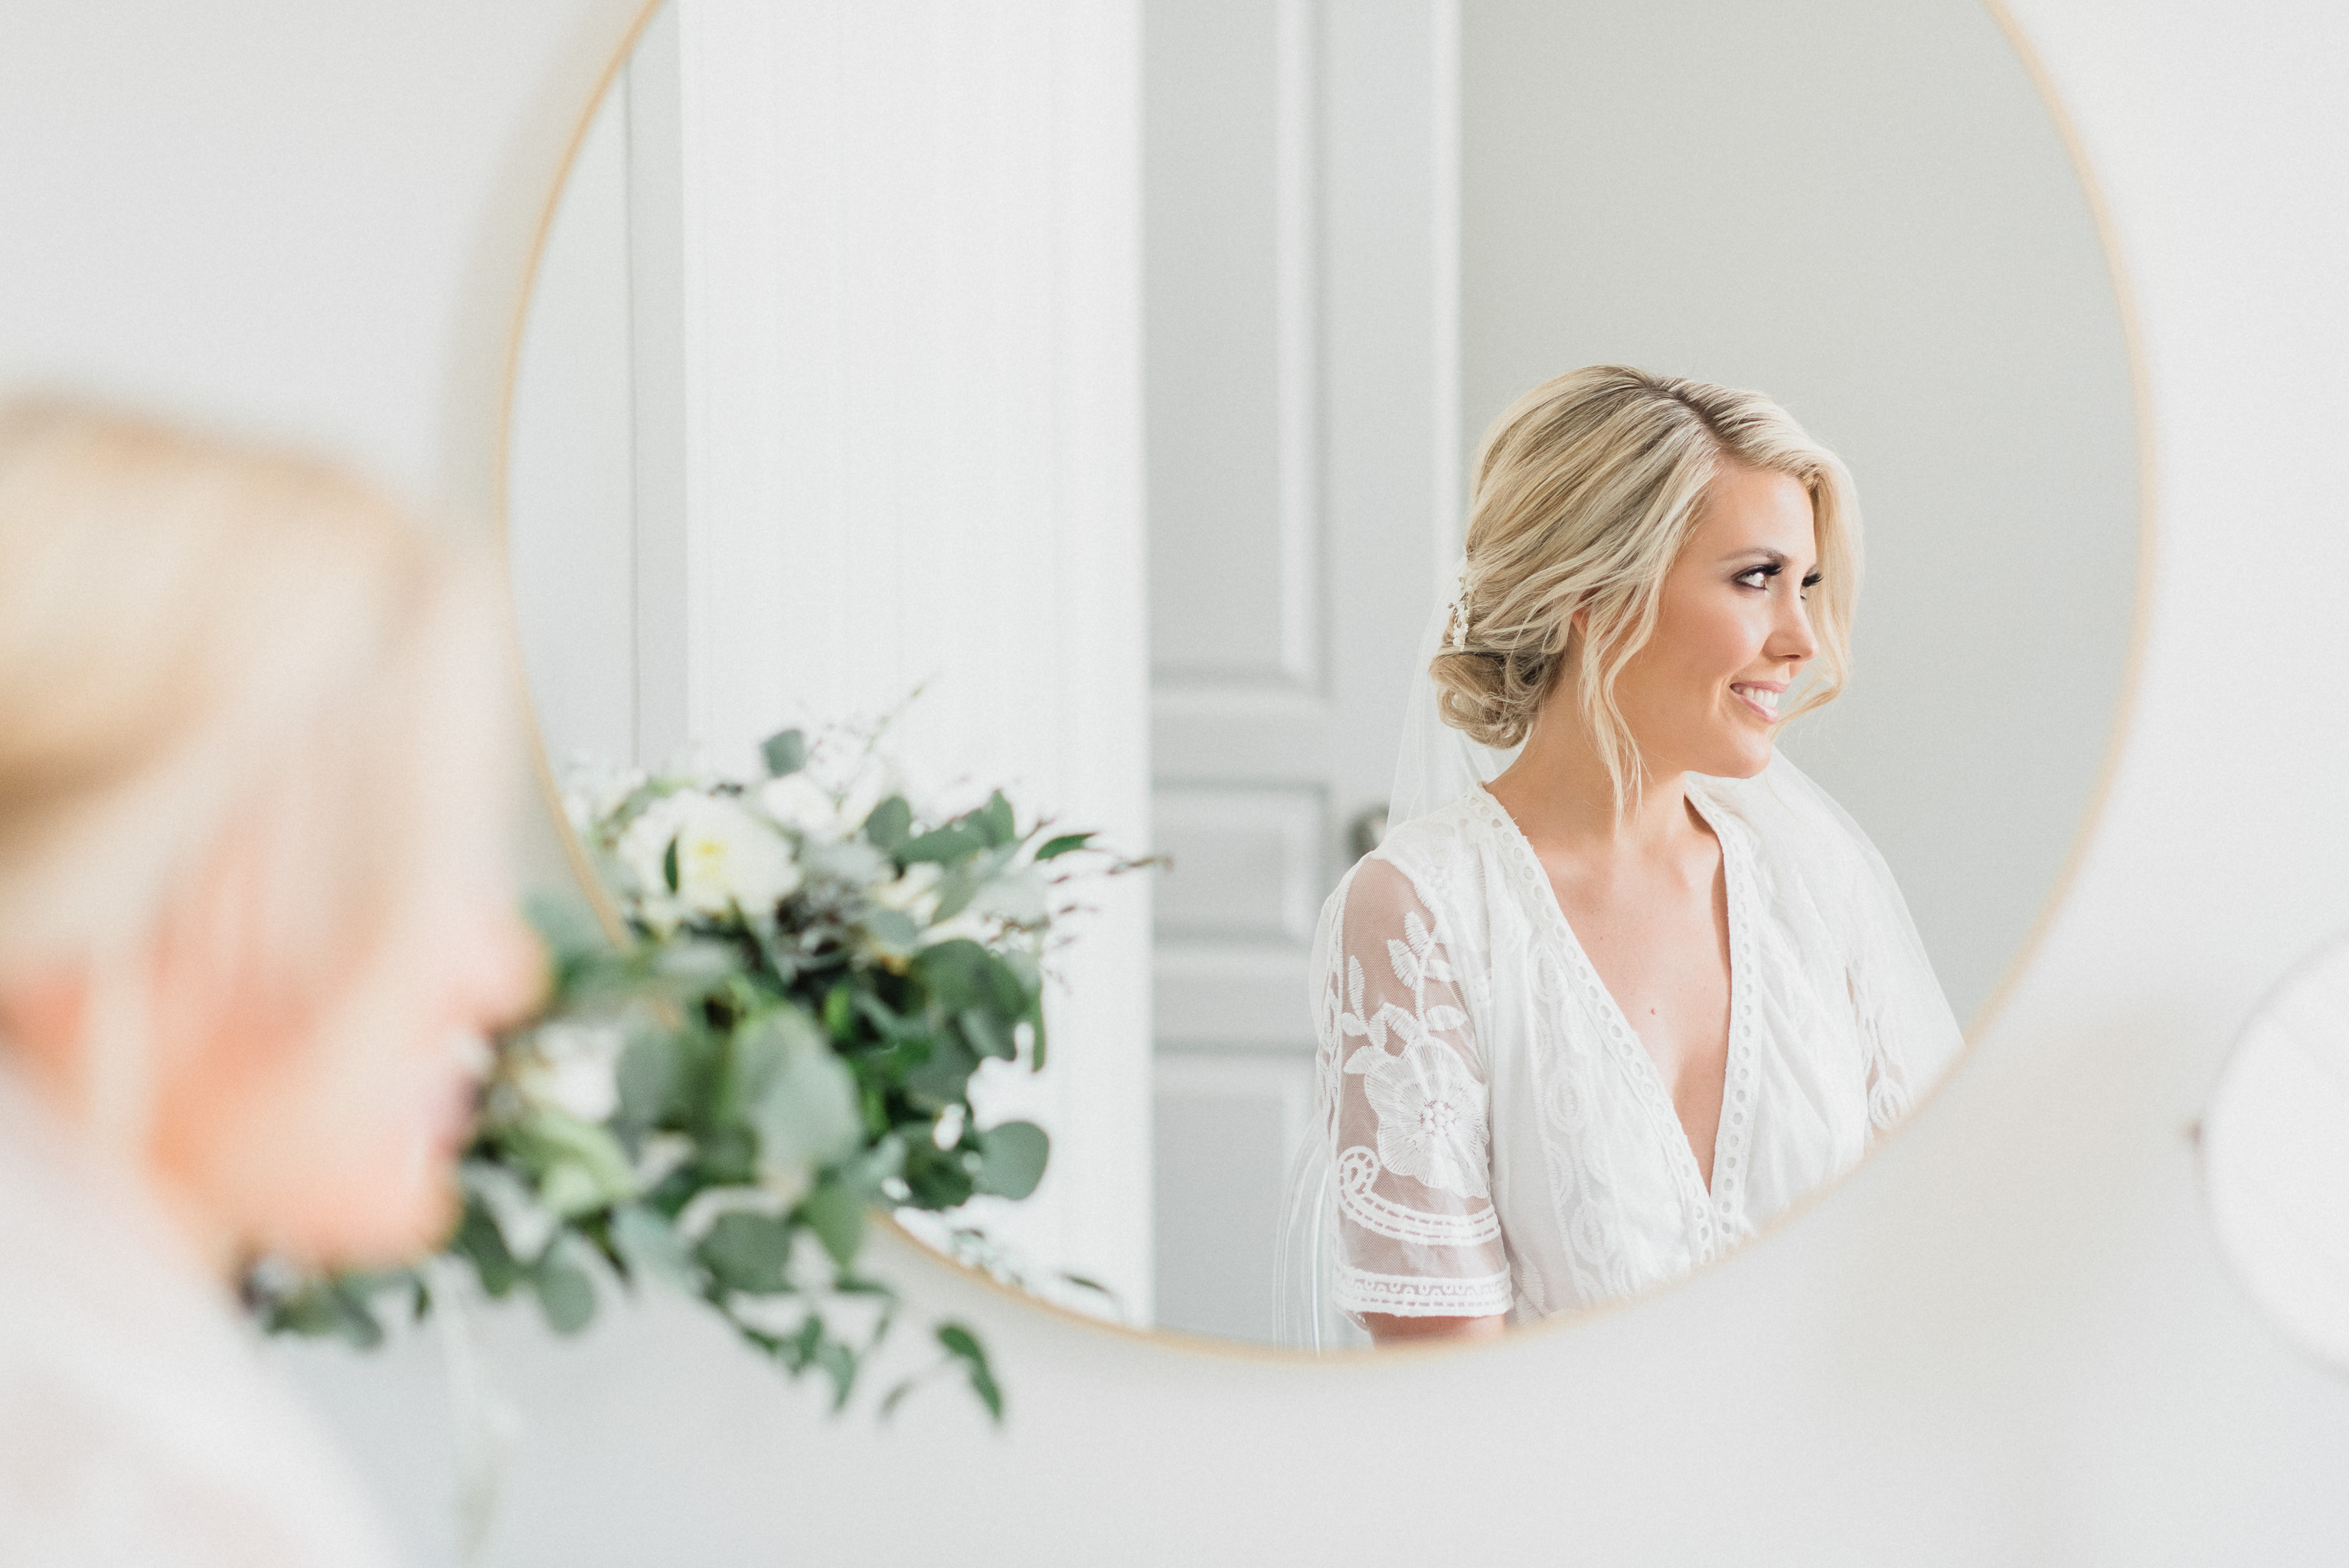 Iconic bridal portrait by Jenn Kavanagh Photography